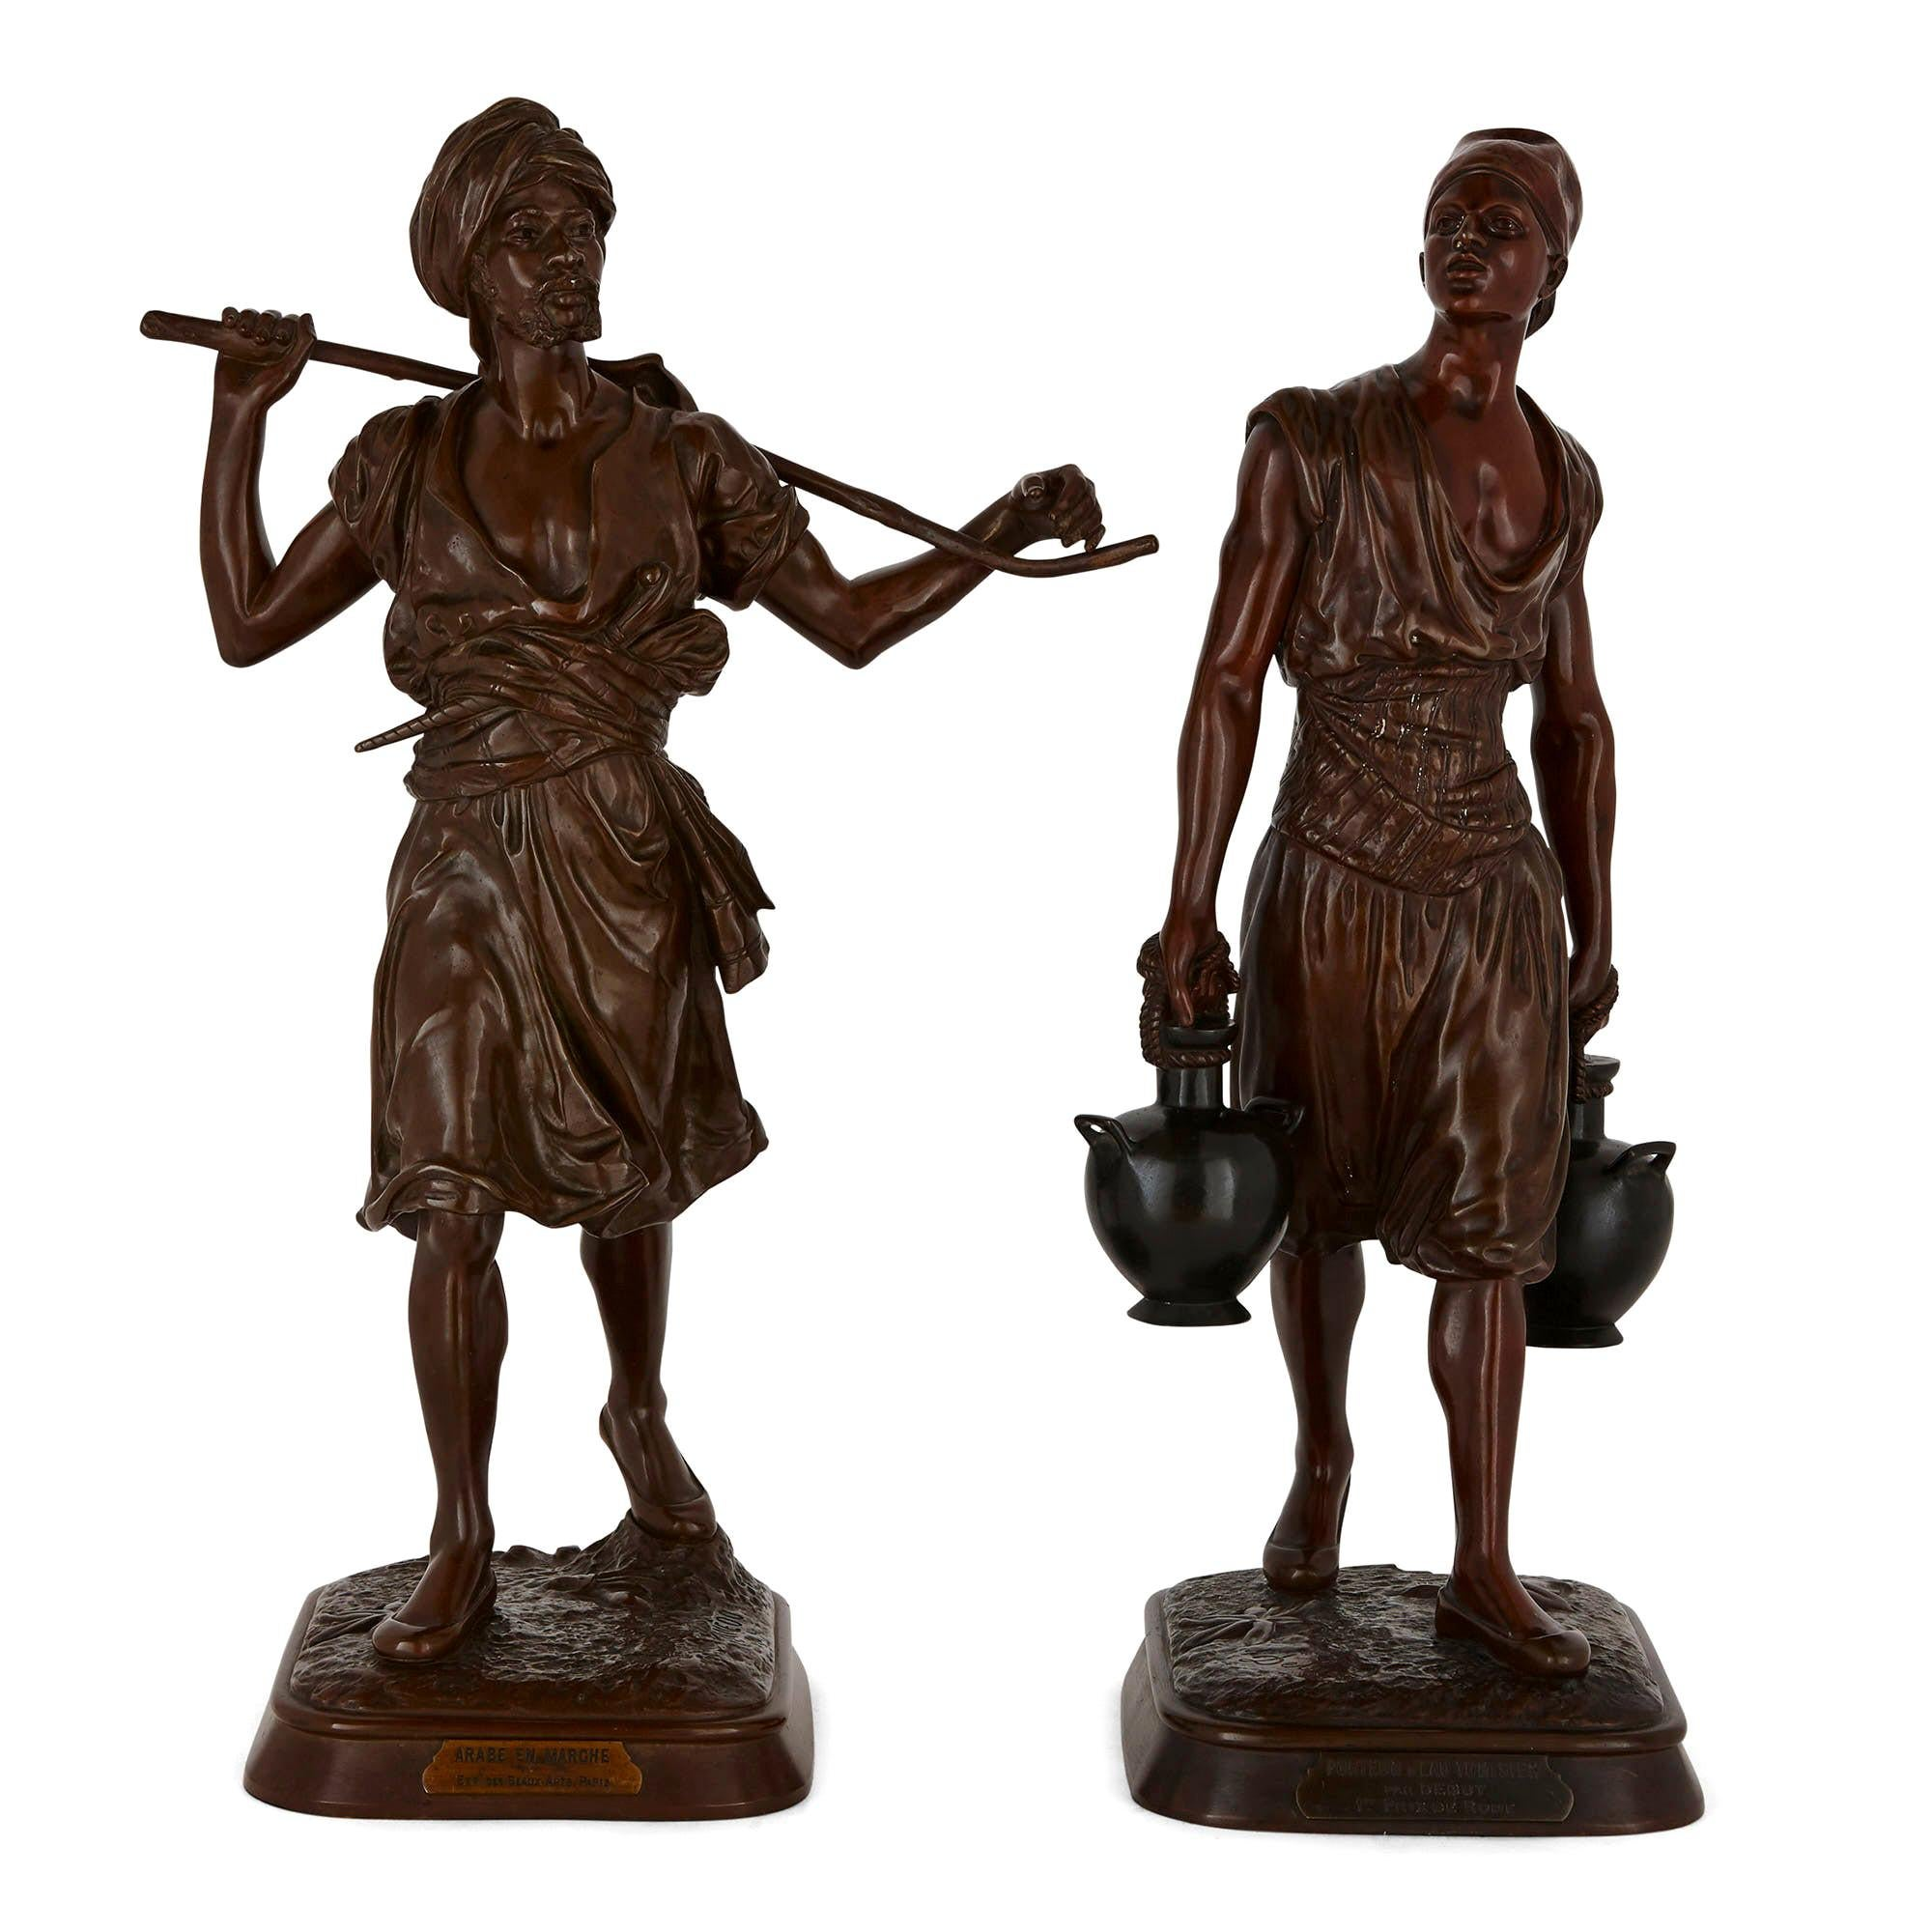 Two Orientalist Patinated Bronze Sculptures by Debut and Pinedo